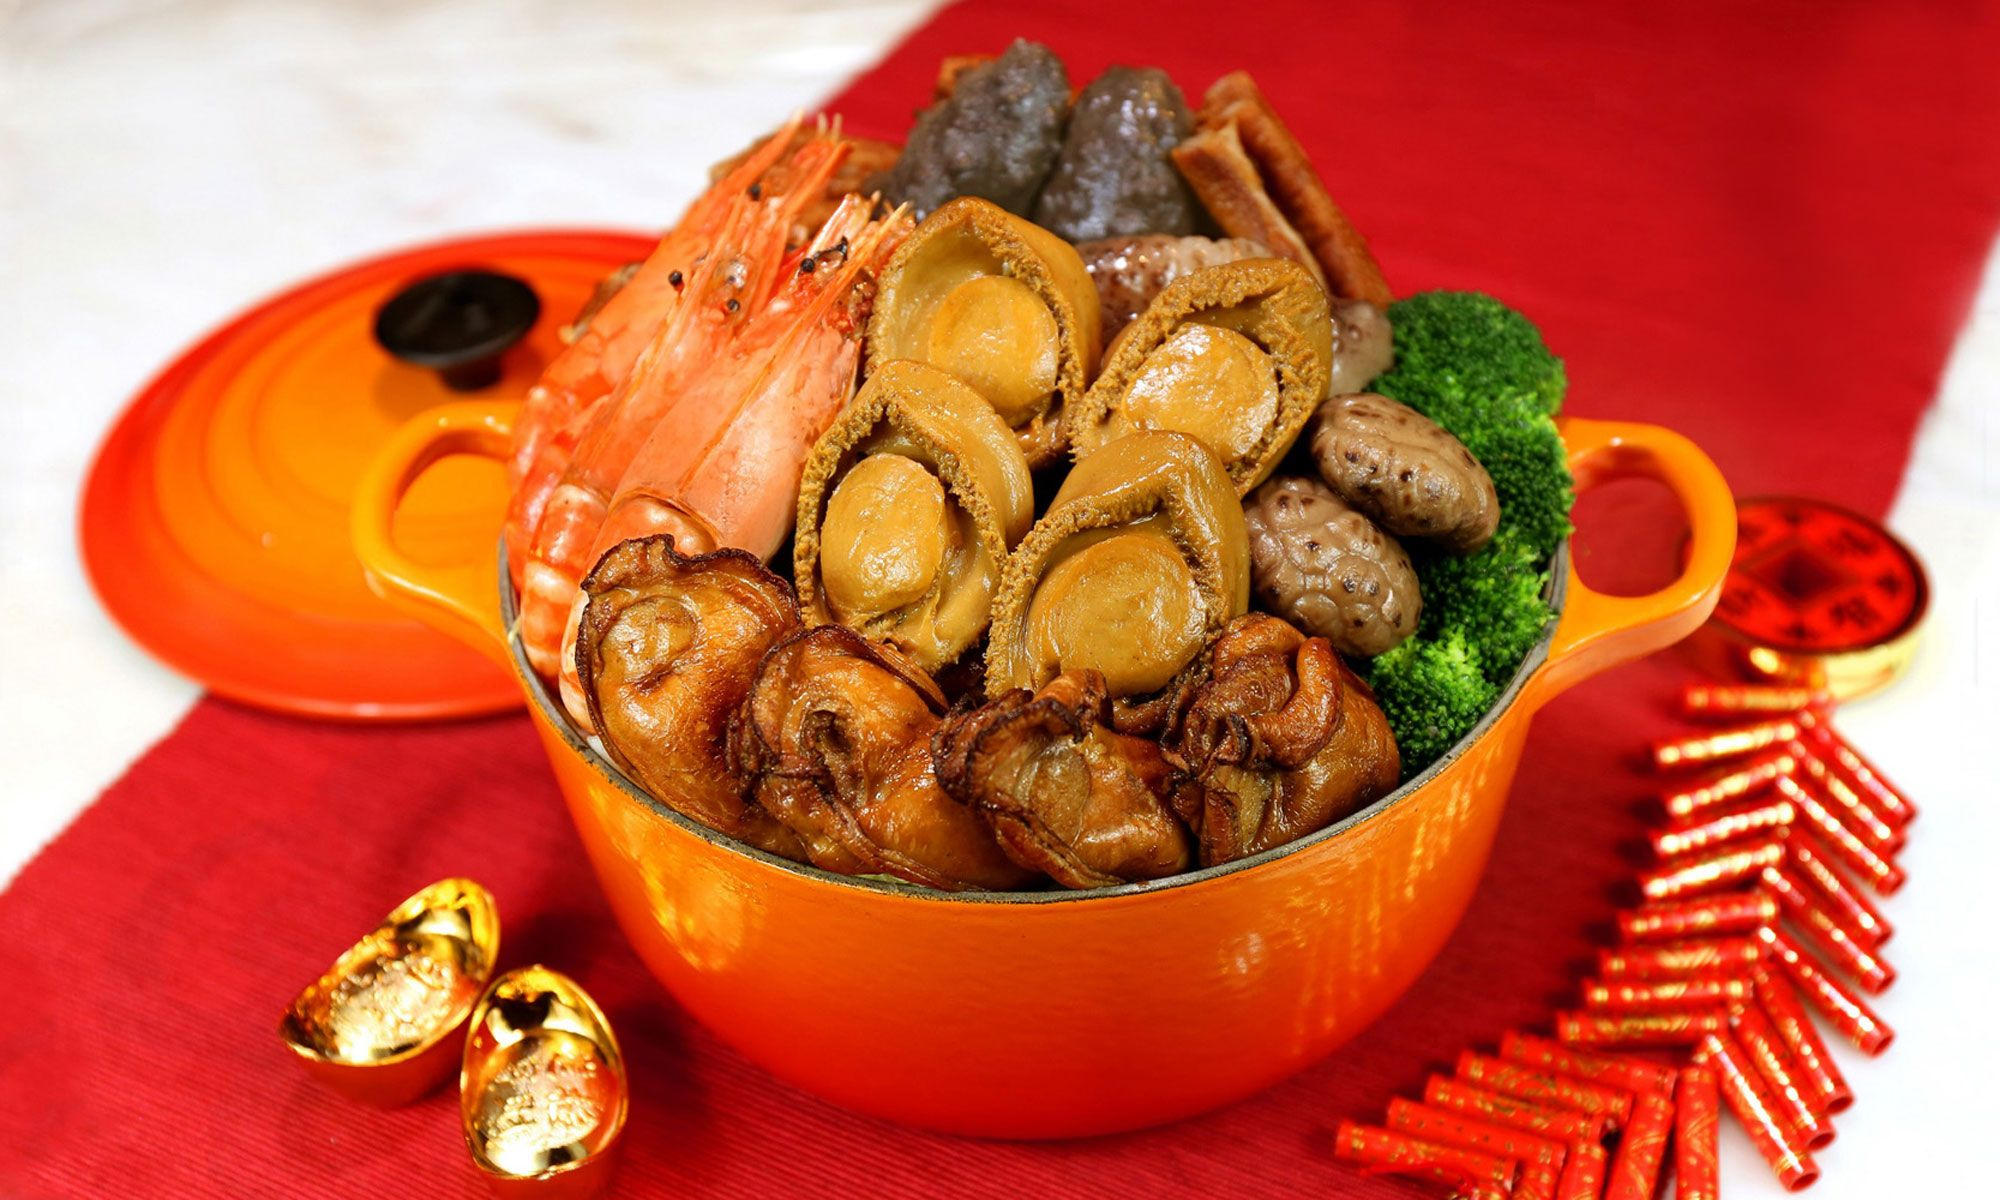 Celebrate Chinese New Year with Auspicious Delicacies from Tycoon Tann